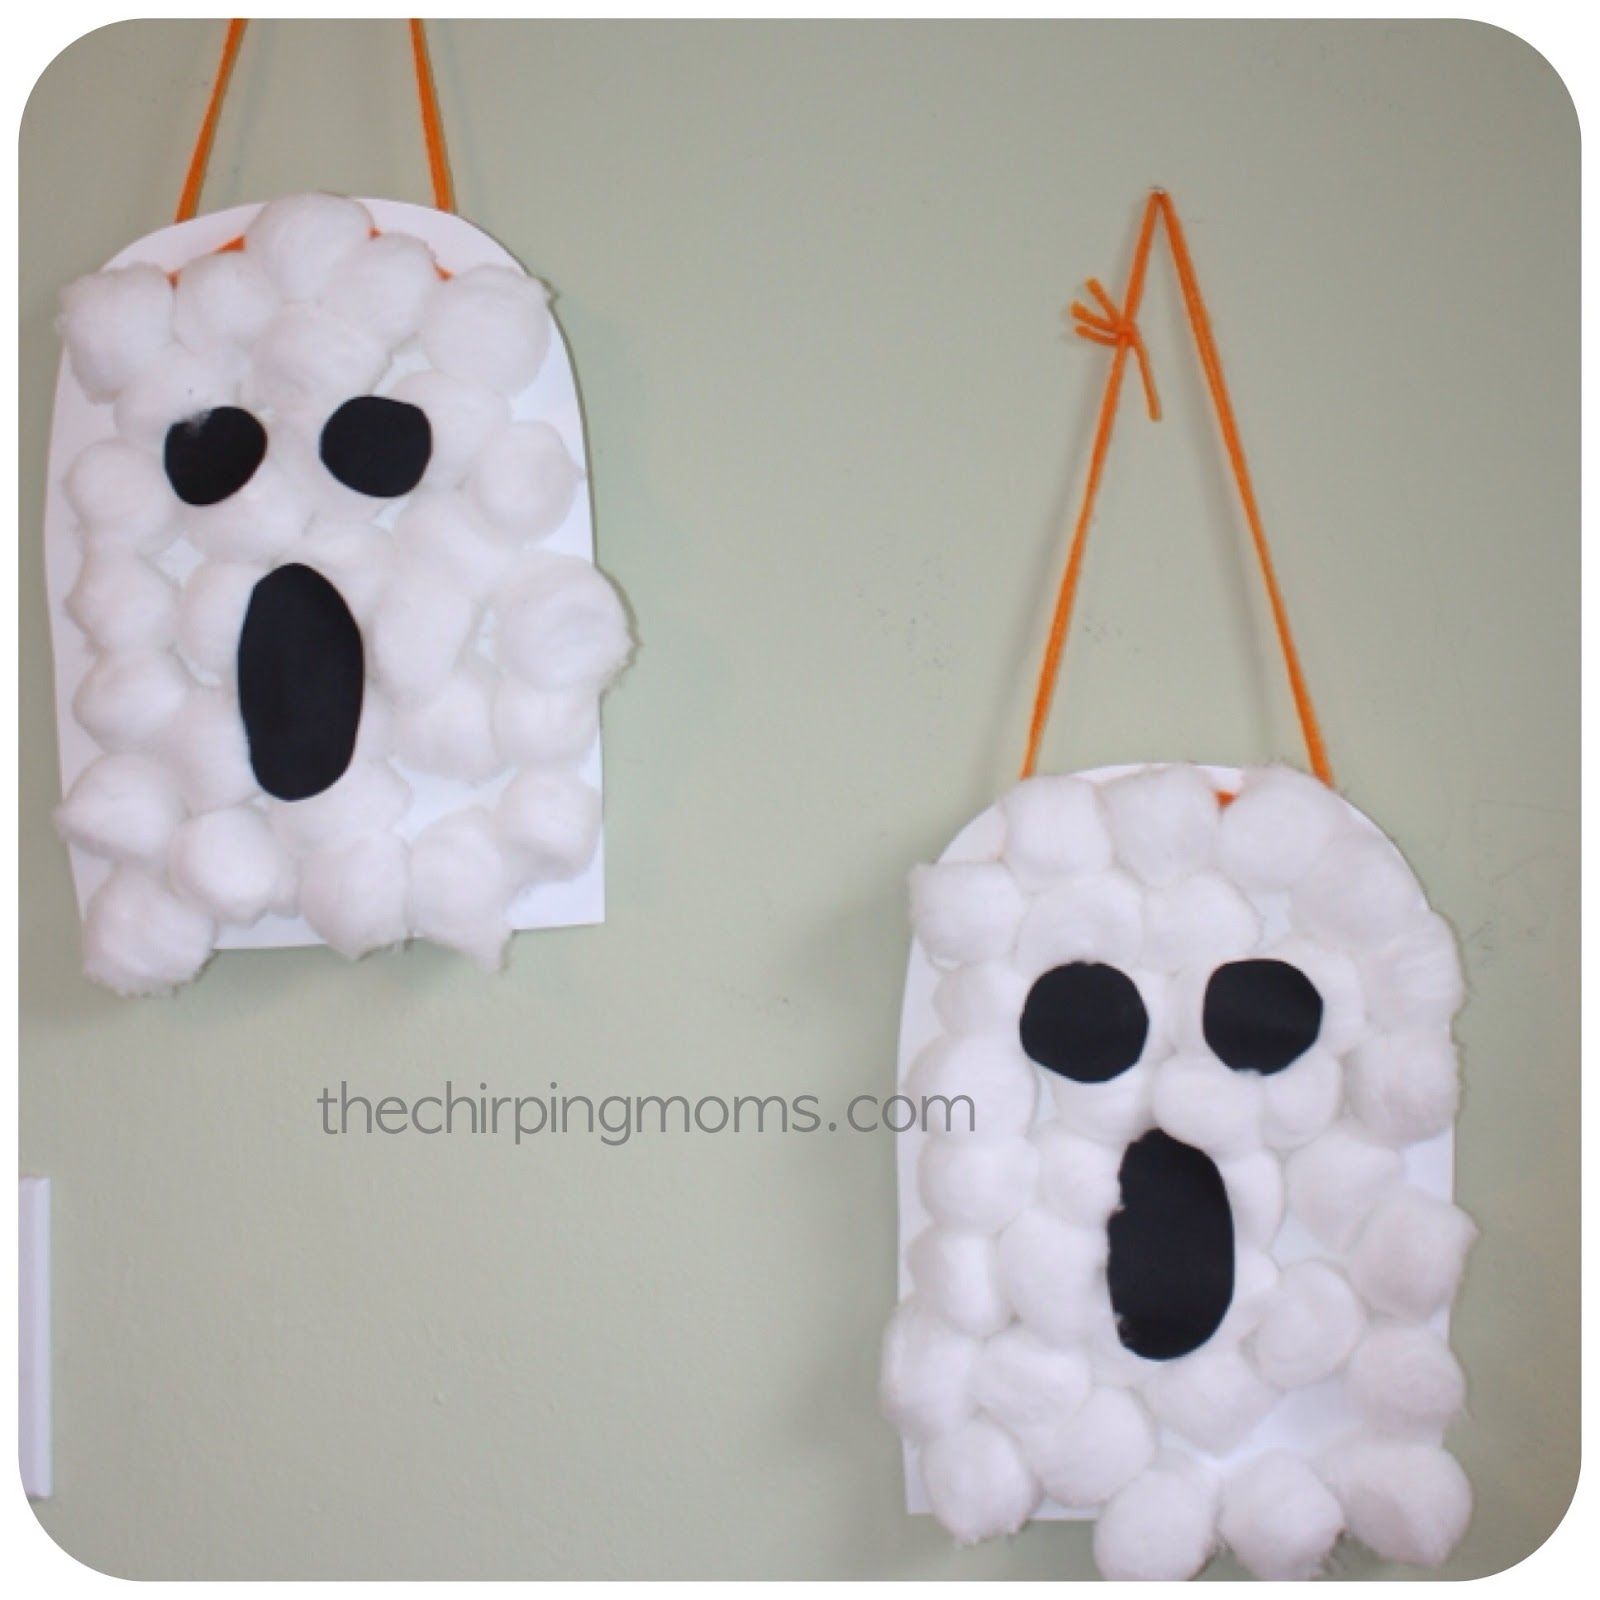 the chirping moms halloween projects for the kids fun made in late sept tied to porch with cut strips white plastic bag that made it look like a ghost - Halloween Arts And Crafts For Kids Pinterest